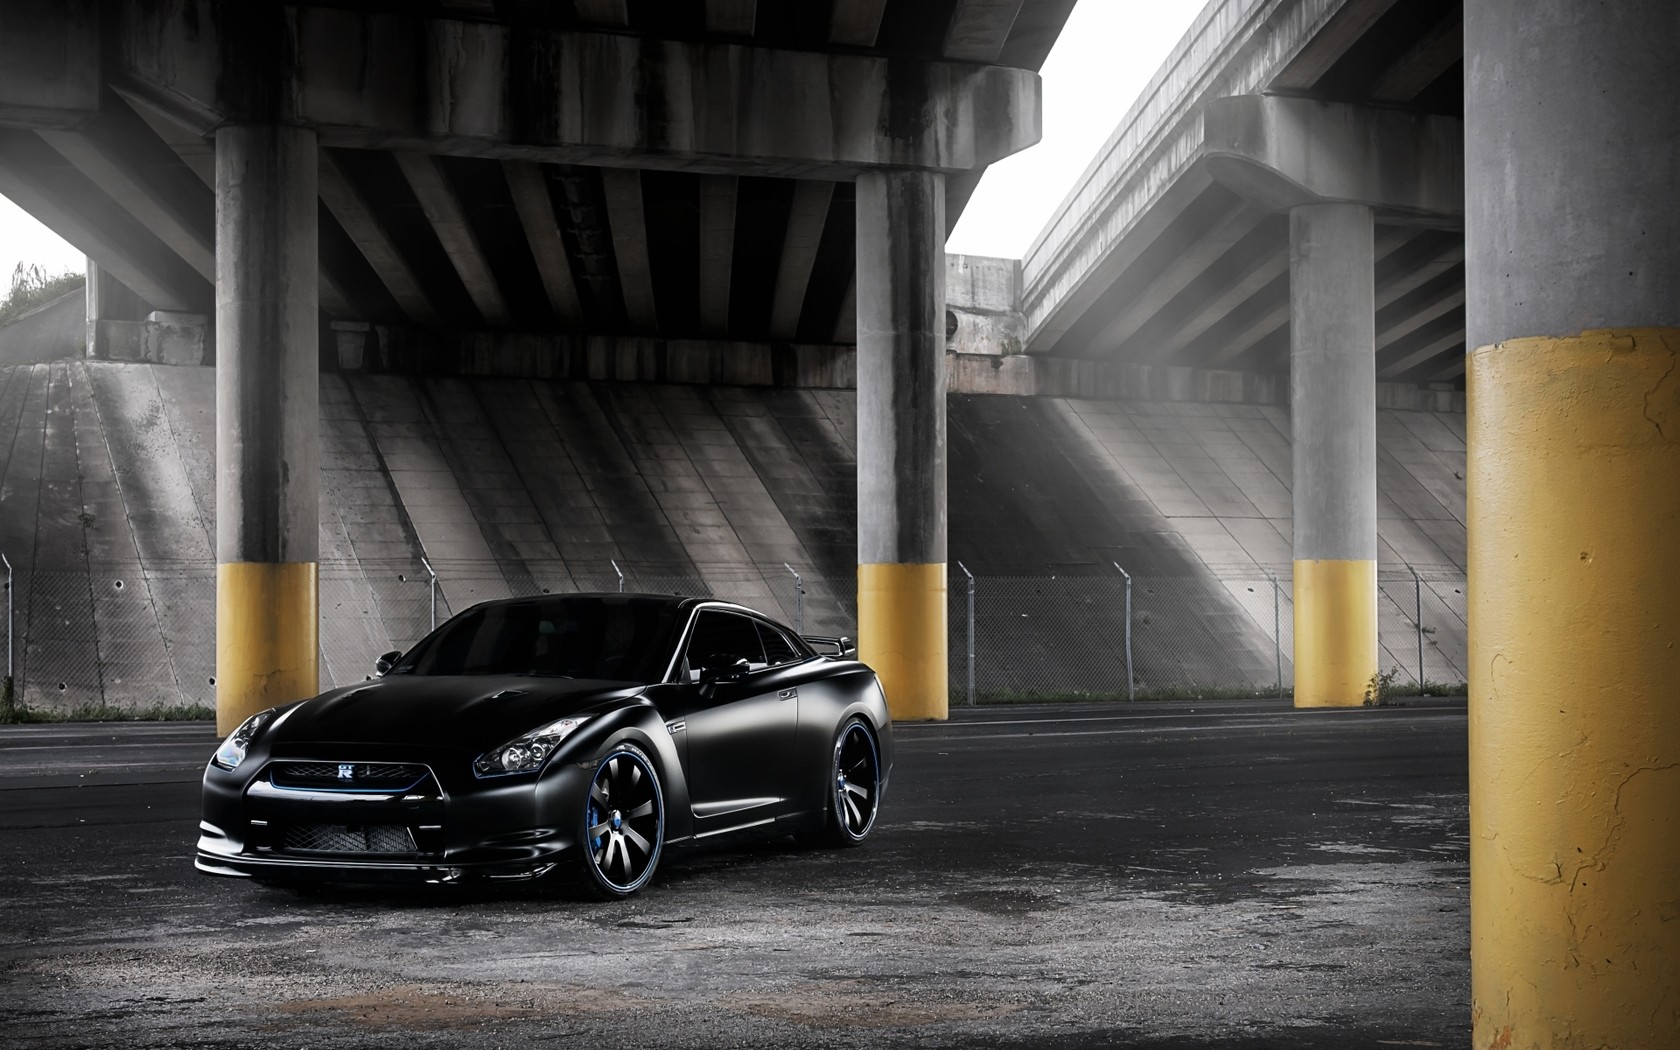 Hd Wallpapers For Laptop 15 6 Inch Screen Daily Wallpaper Flat Black Nissan Gtr I Like To Waste